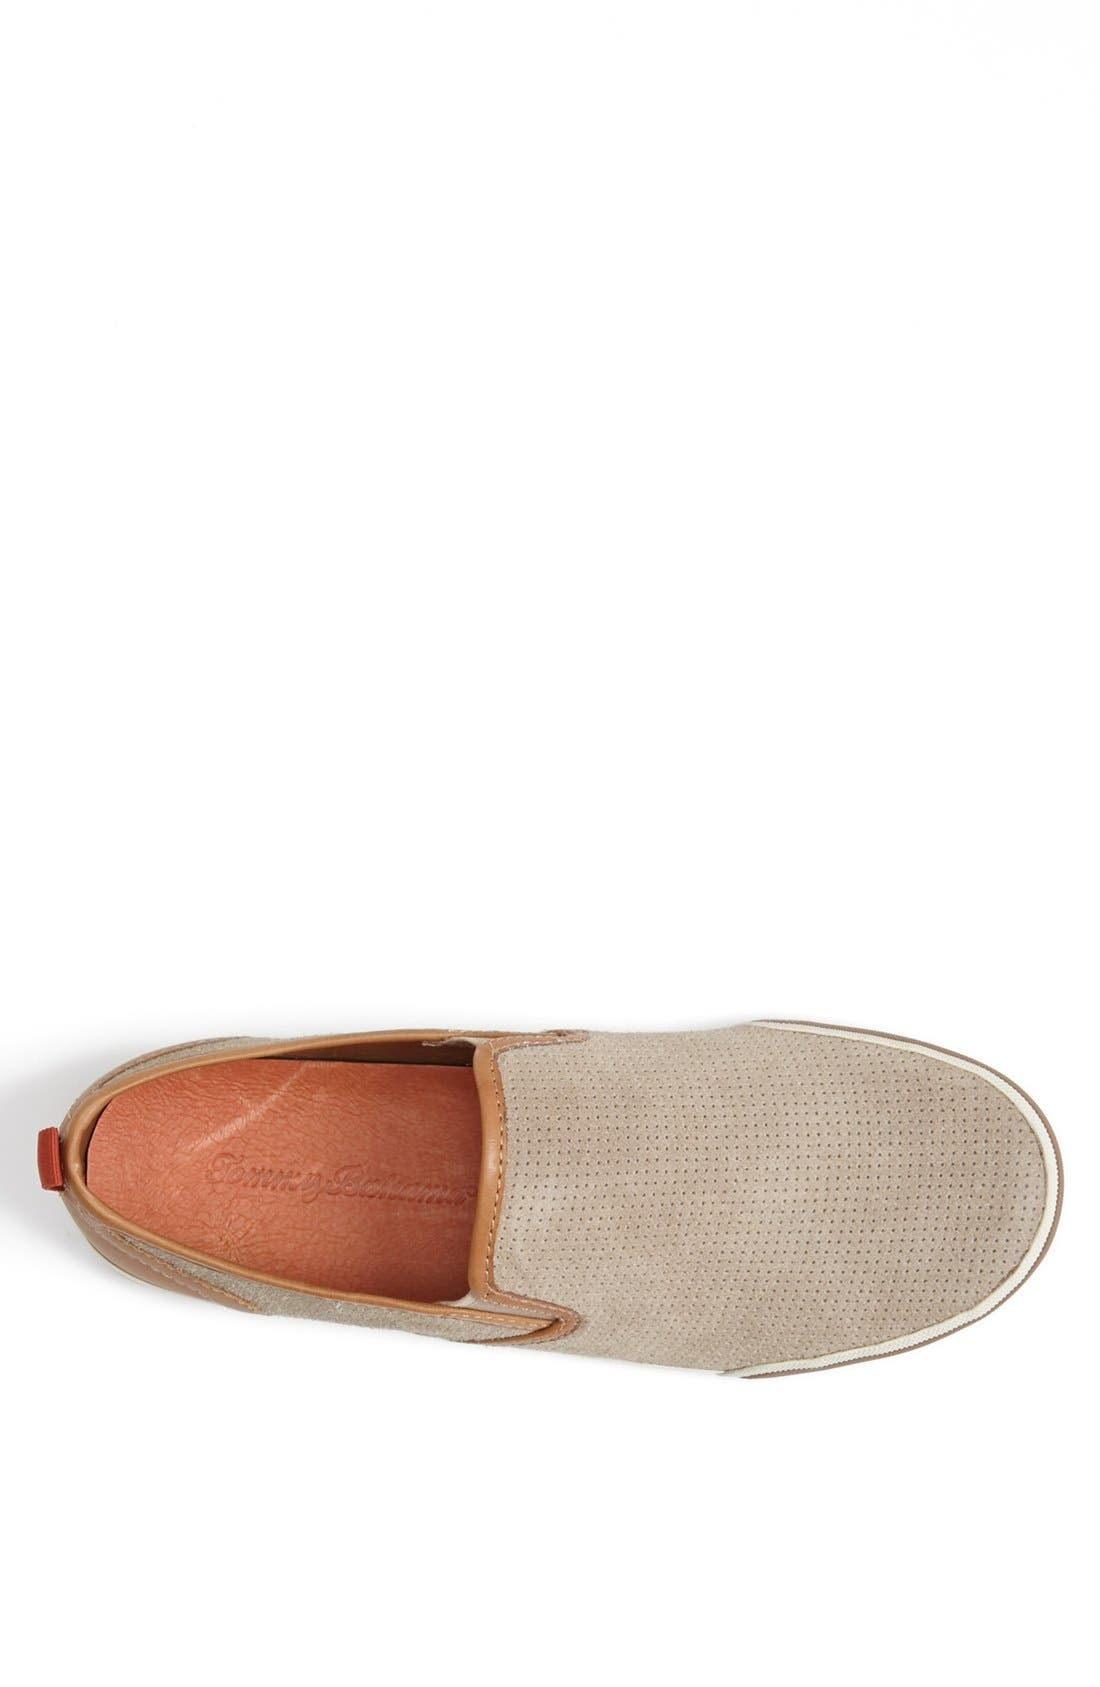 Alternate Image 3  - Tommy Bahama 'Beach Dweller' Slip-On